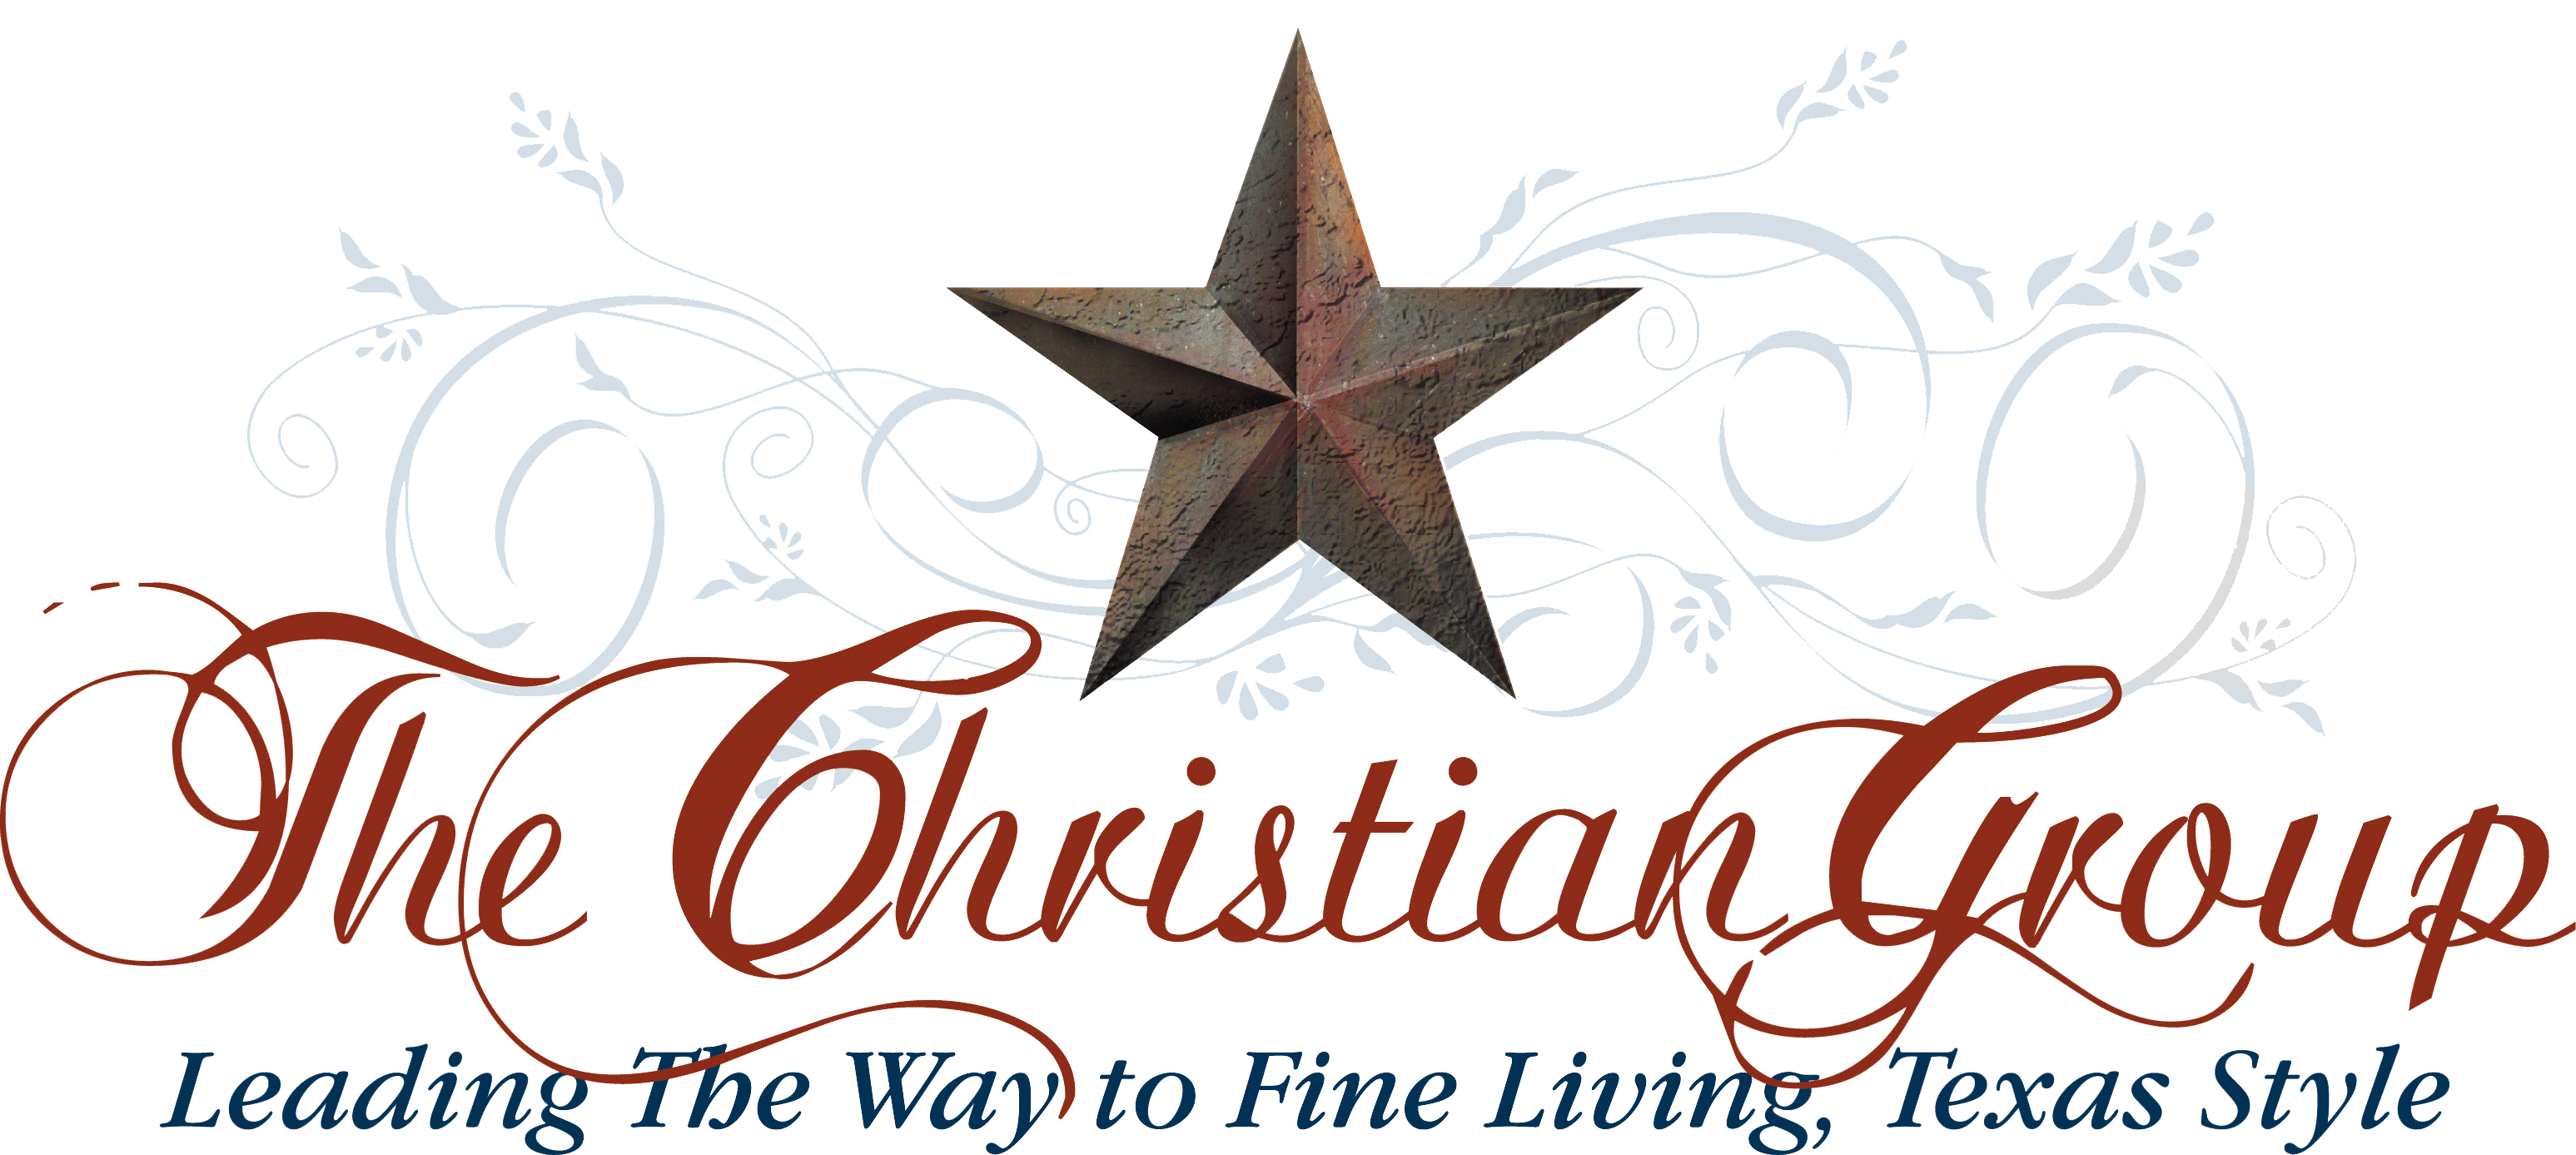 Christian-Group-Logo-Transparent-background.png